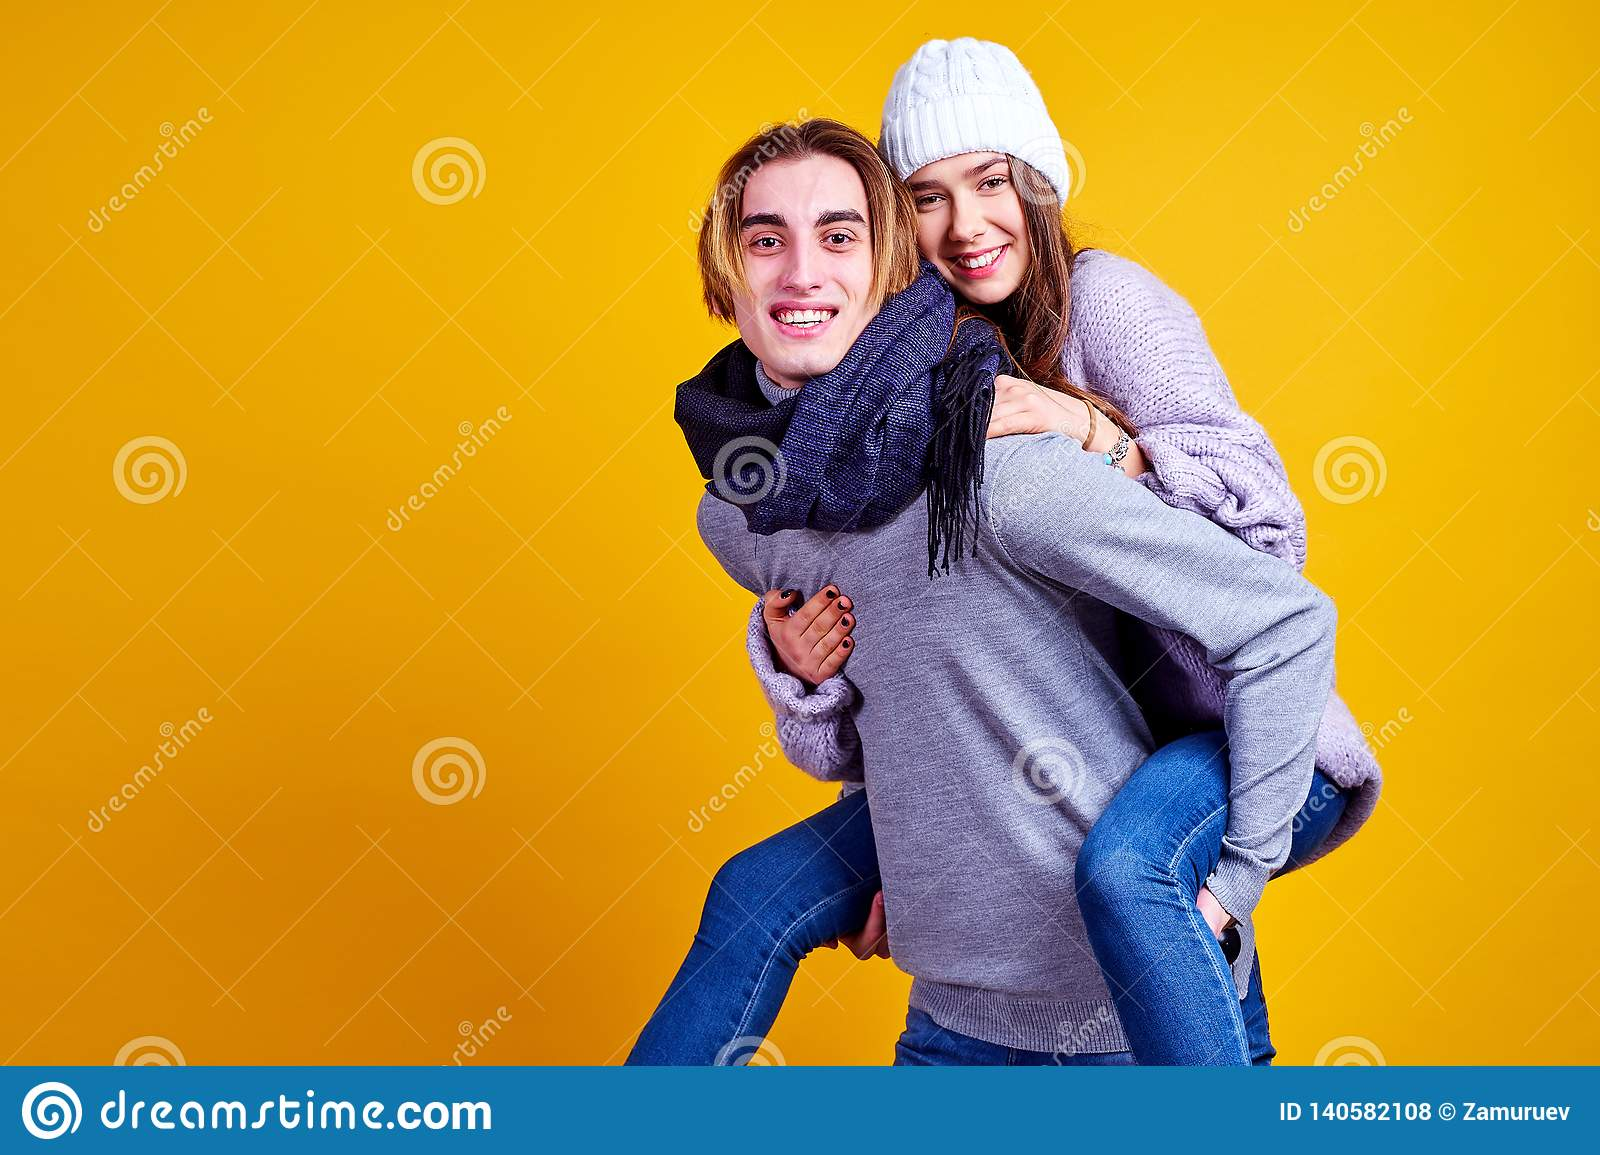 Image of lovely couple having fun while man piggybacking his girlfriend on yellow background